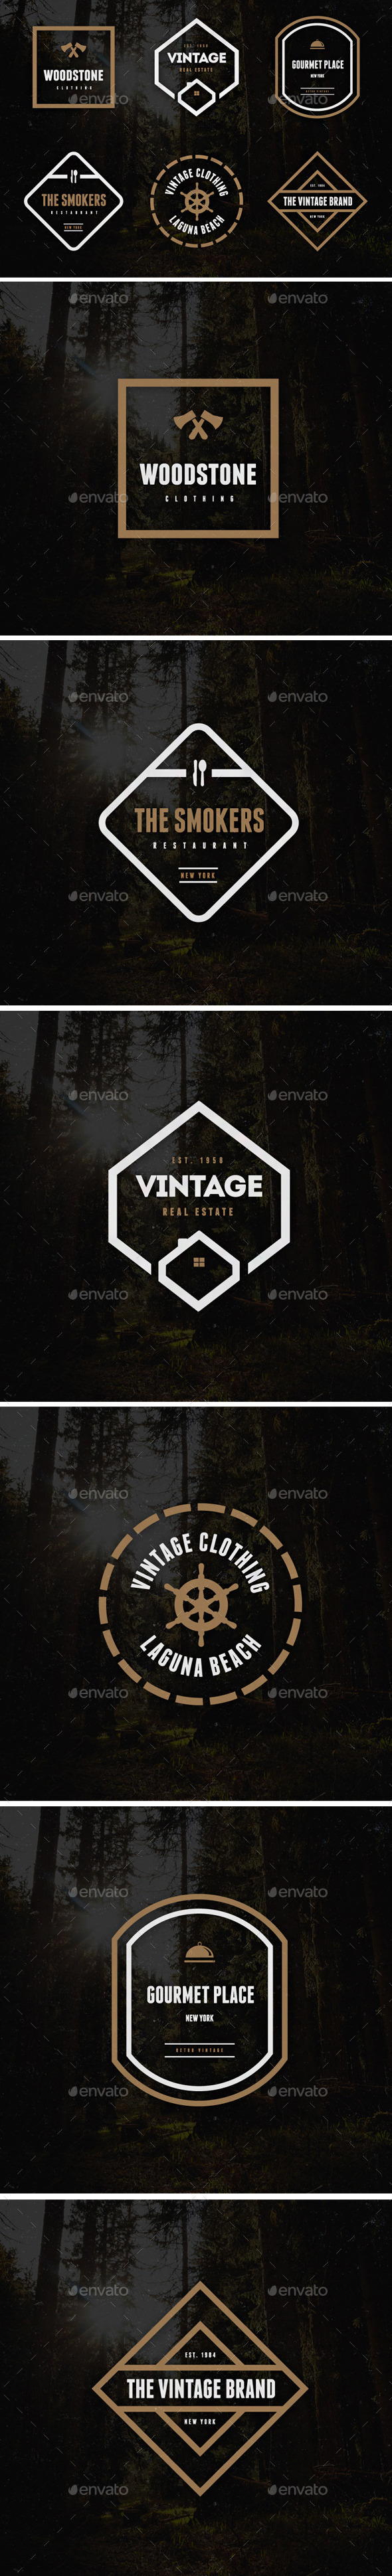 GraphicRiver Vintage Labels & Badges Logos V21 9256556